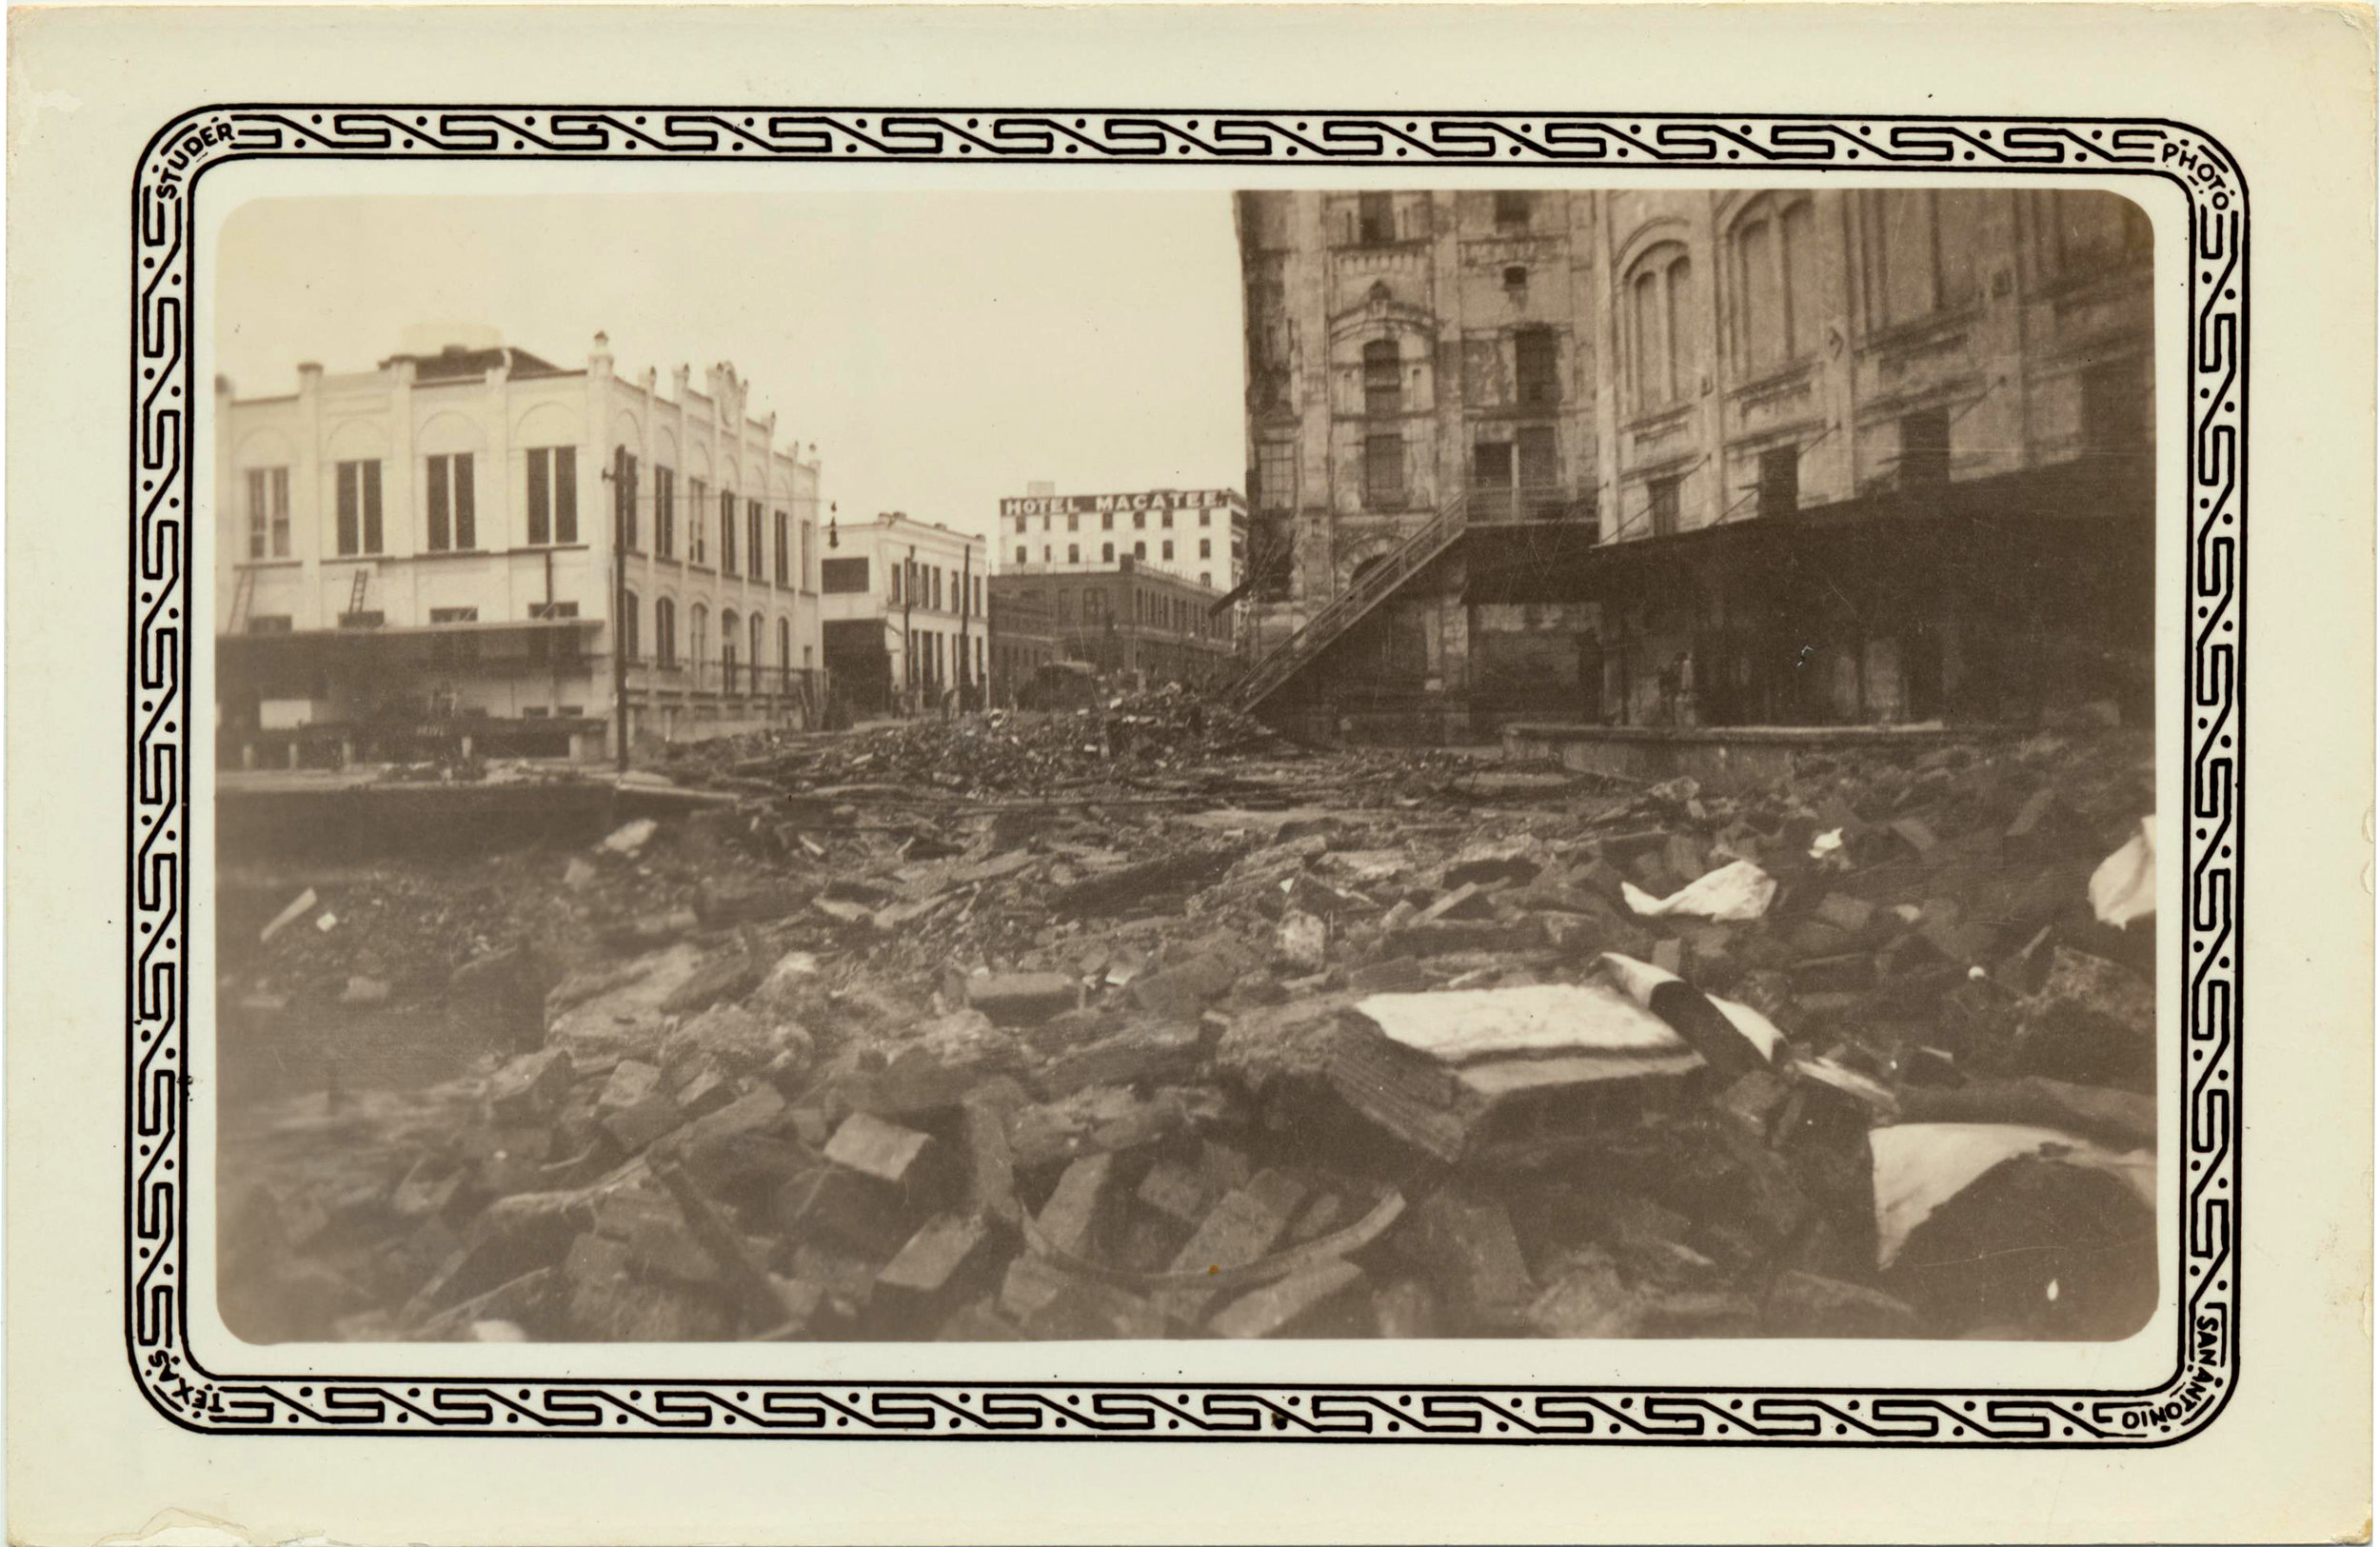 December 11, 1935- This photo shows washington Avenue ripped apart by flood waters.